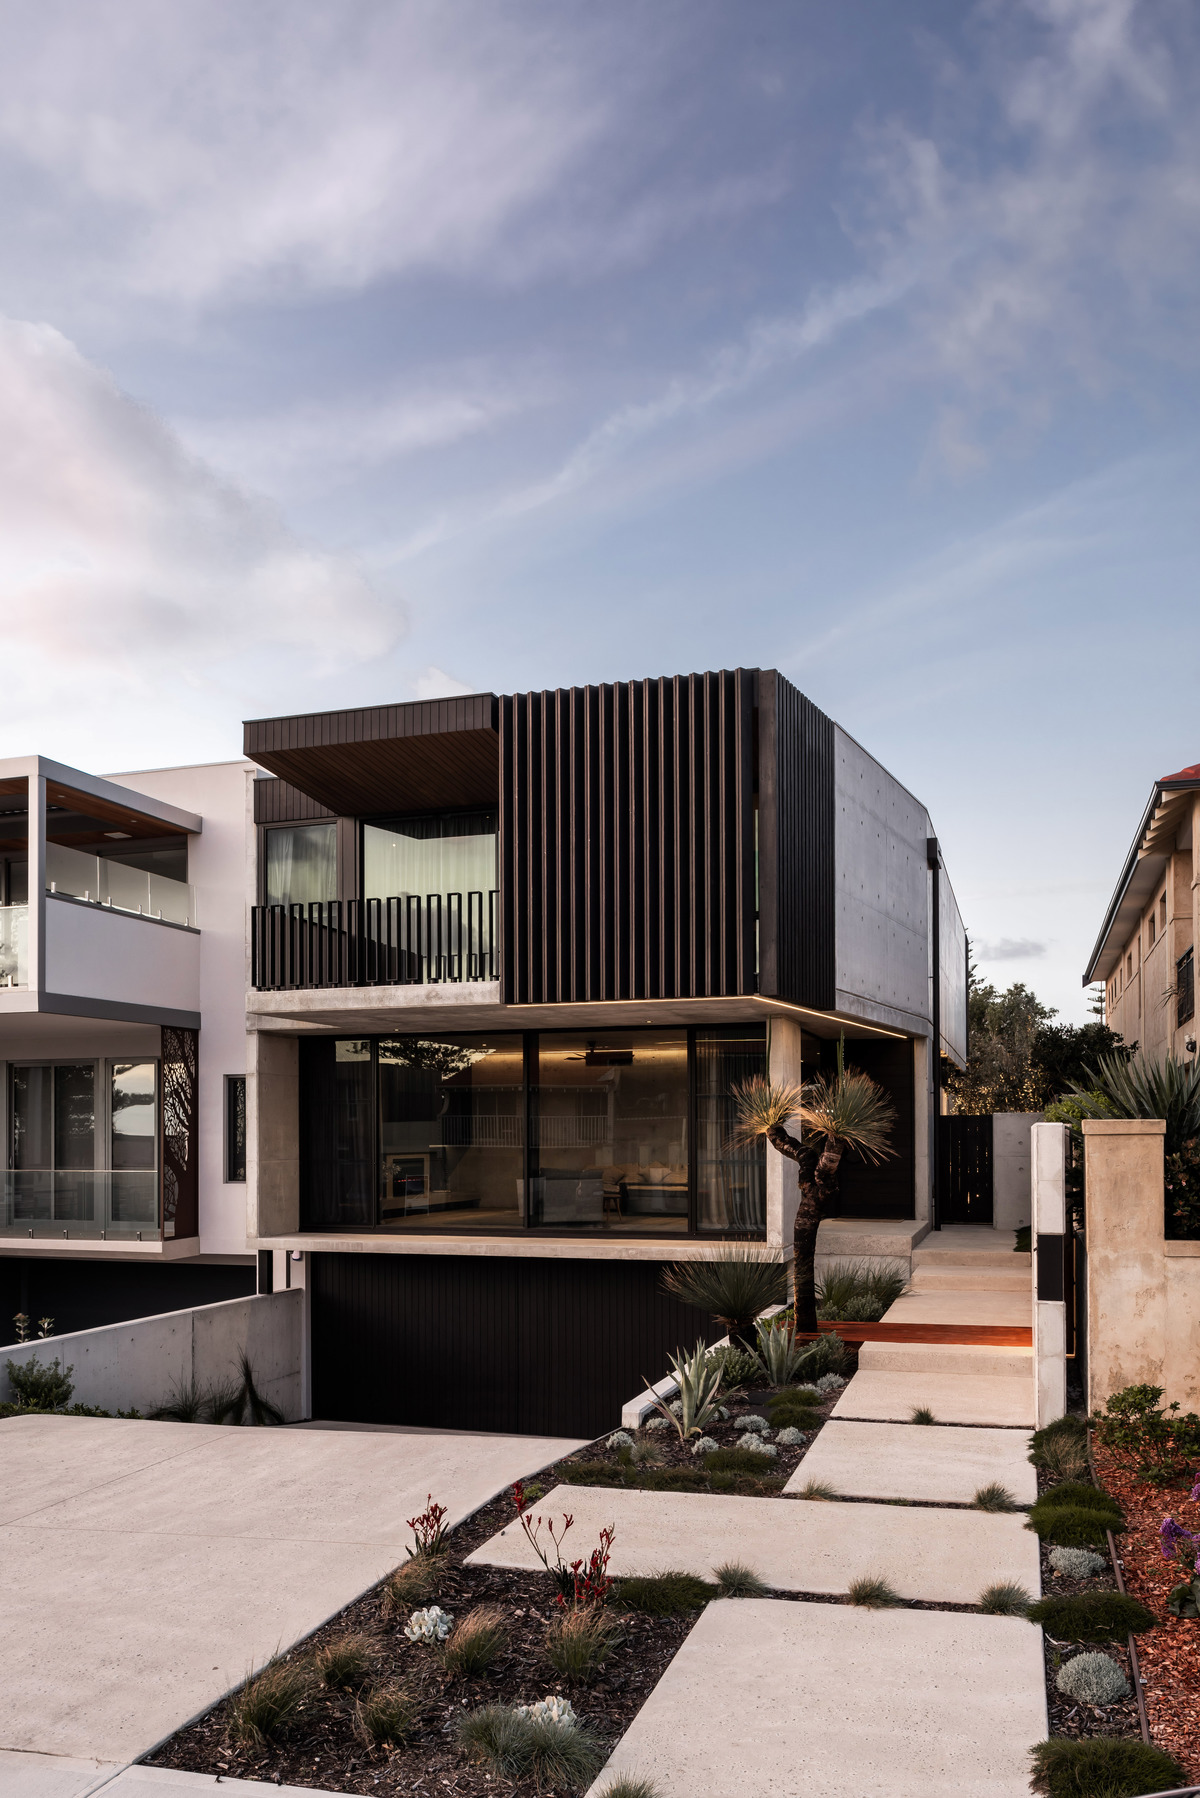 Vodka_Palace_Marcus_Browne_architect_AmazingArchitecture_Australia_003.jpg